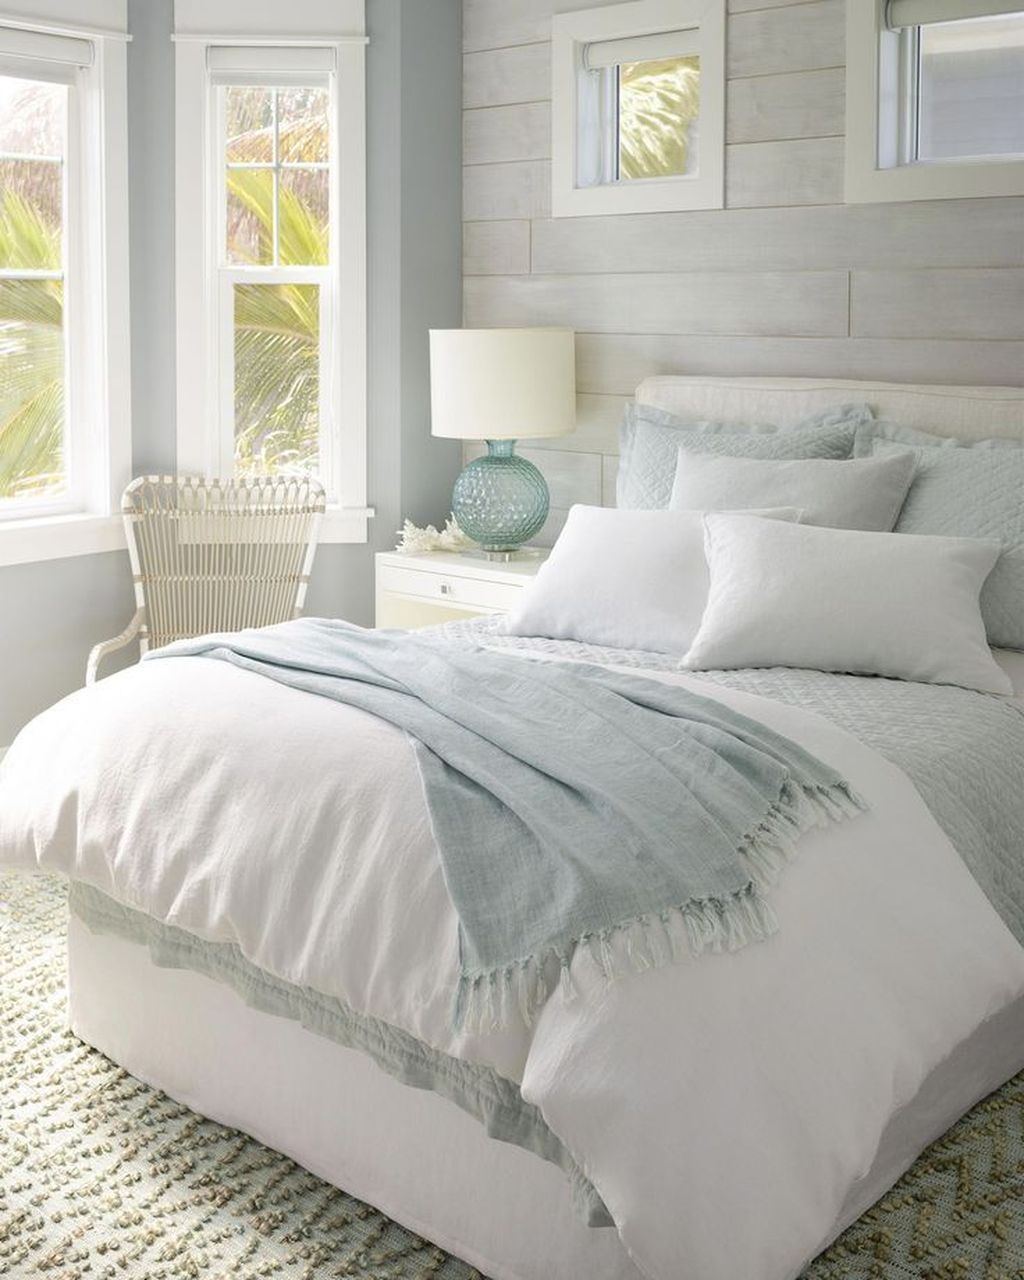 Lovely Spring Bedroom Decor Ideas Trending This Year 26